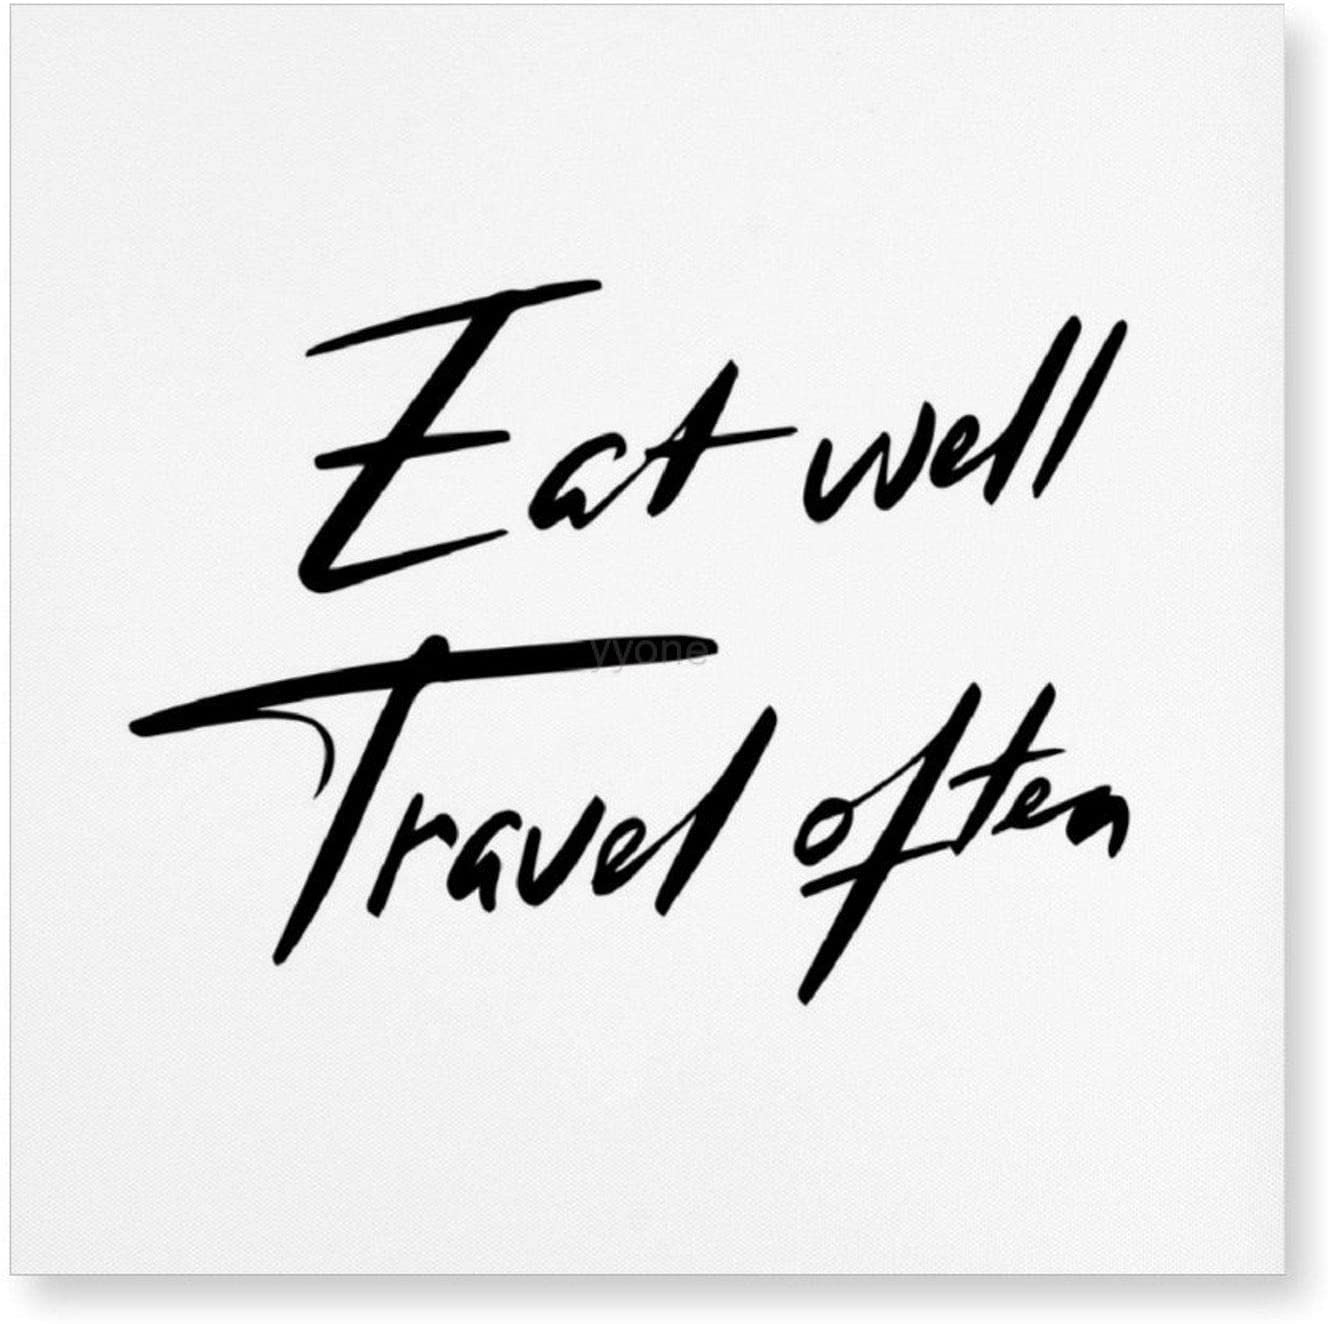 yyone Framed Canvas Printing Wall Décor Eat Well Travel Often, Hanging Canvas Art Print Home Decor for Living Room/Bed Room 8